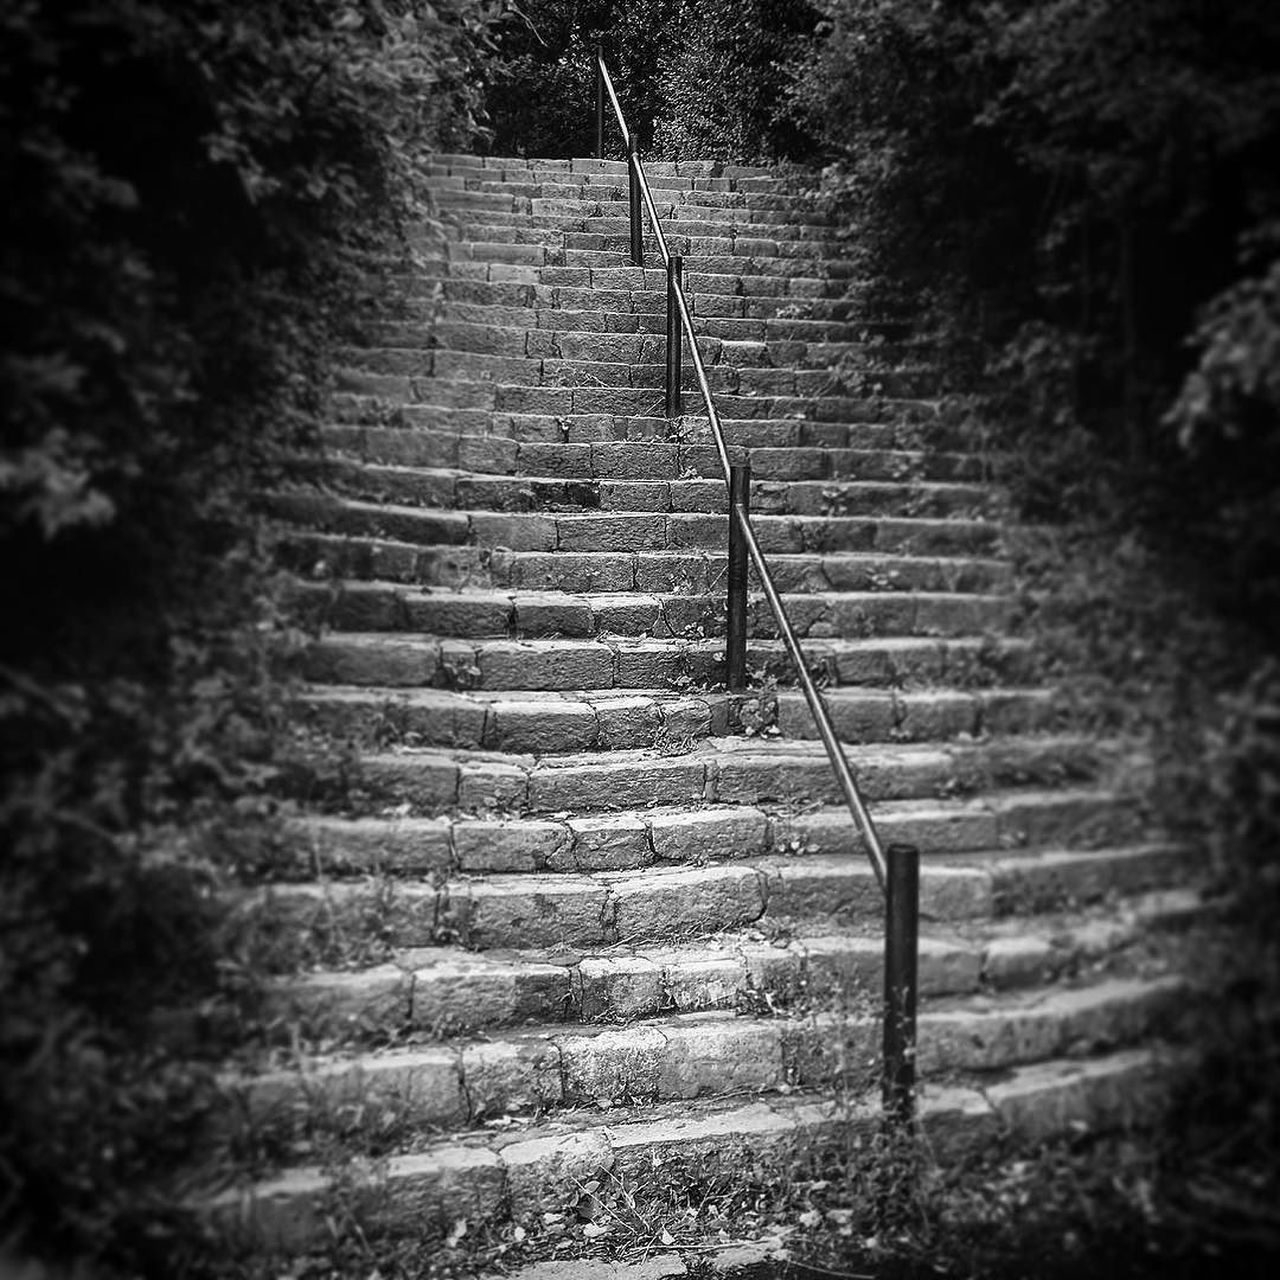 Hilsea Lines Rampart Steps B&W Ancient Monument B&w B&W Collection B&w Photography Day Deterioration Diminishing Perspective Hilsea Lines Hilsea Lines Ramparts Nature No People Old Outdoors Ramparts Steps Stone Steps Vanishing Point